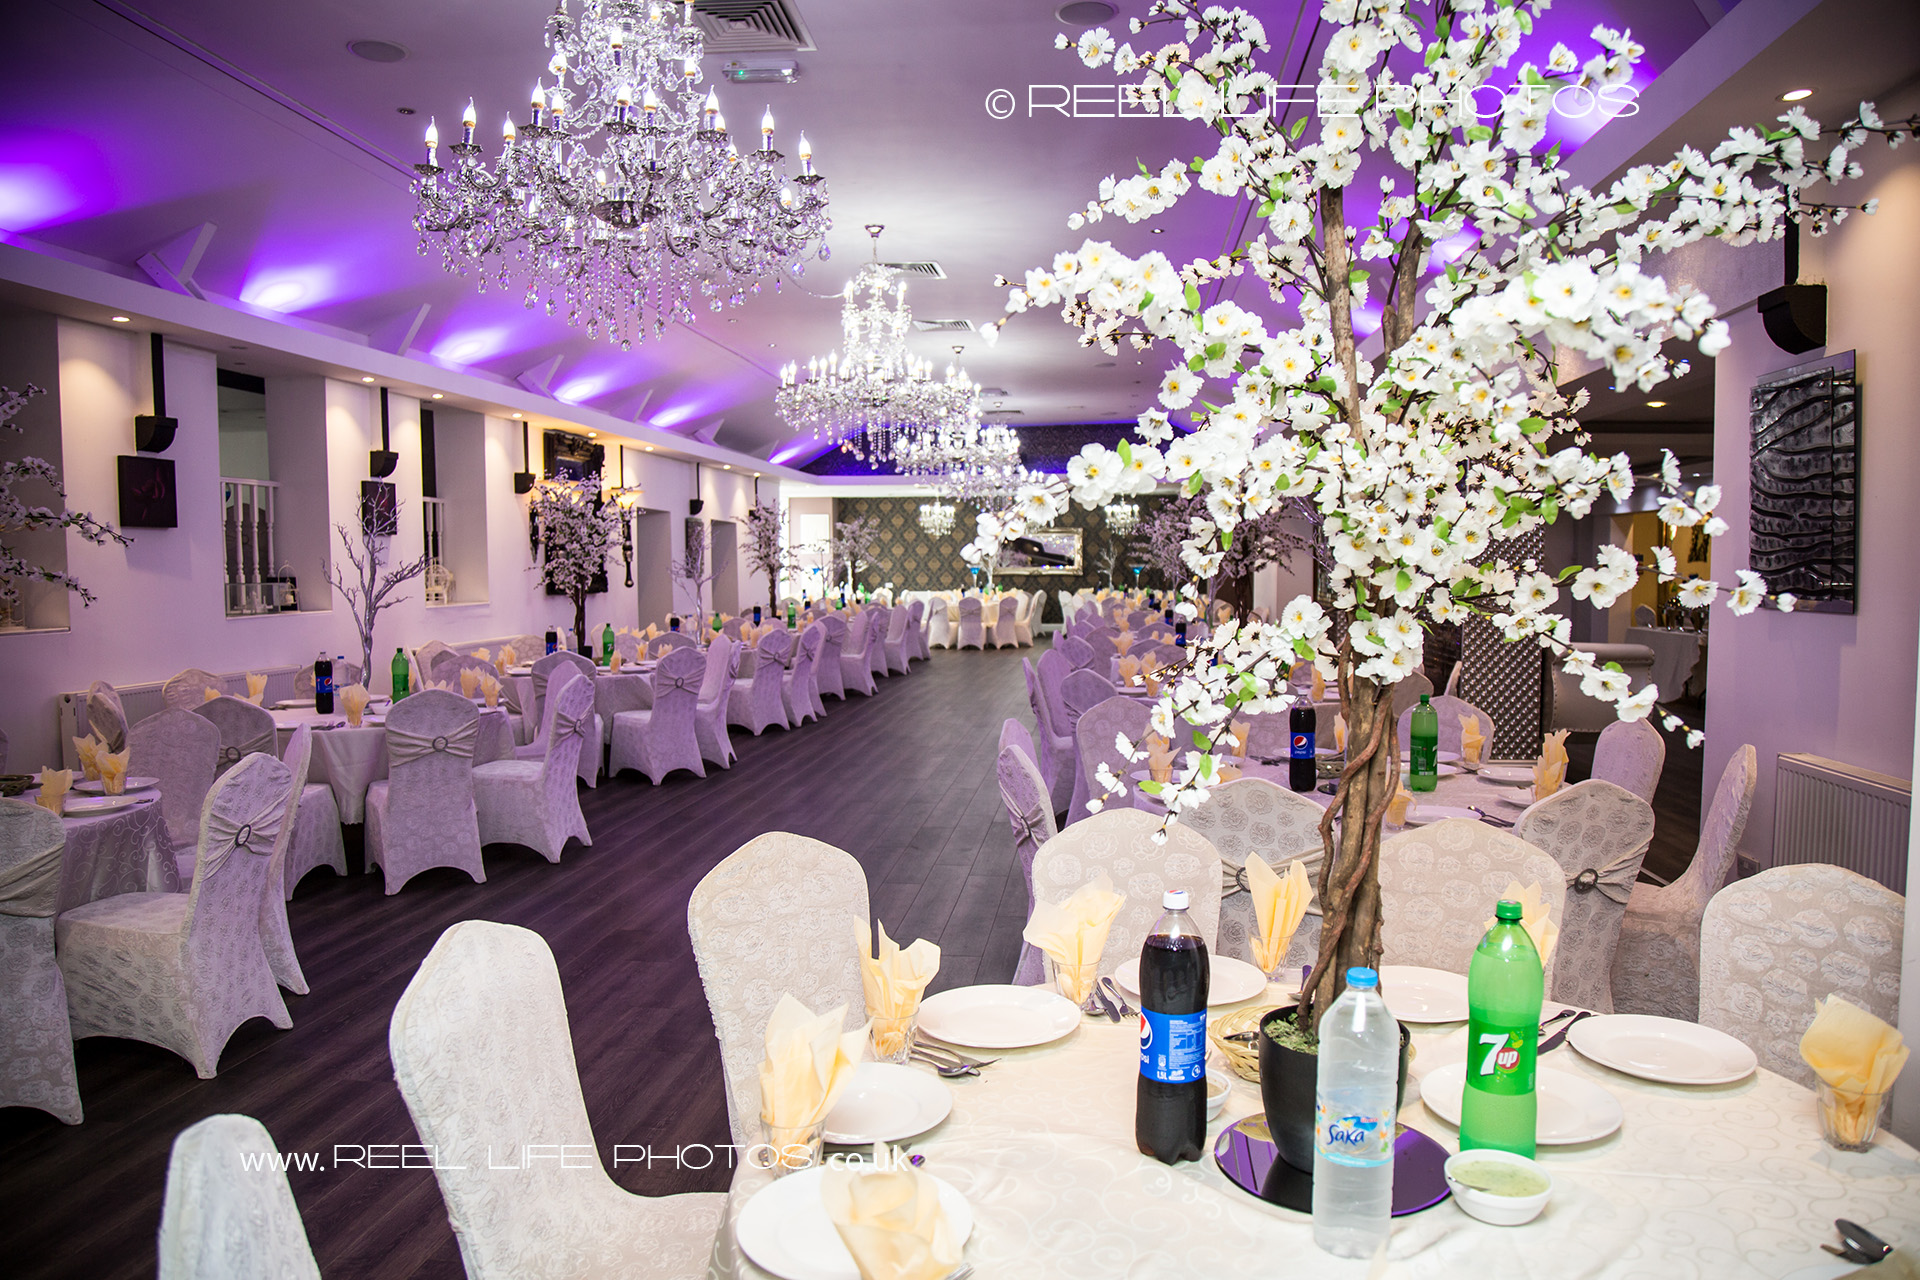 Reellifephotos wedding photography 2016 september pictures of asian wedding venue banqueting hall in west yorkshire the mens side junglespirit Choice Image